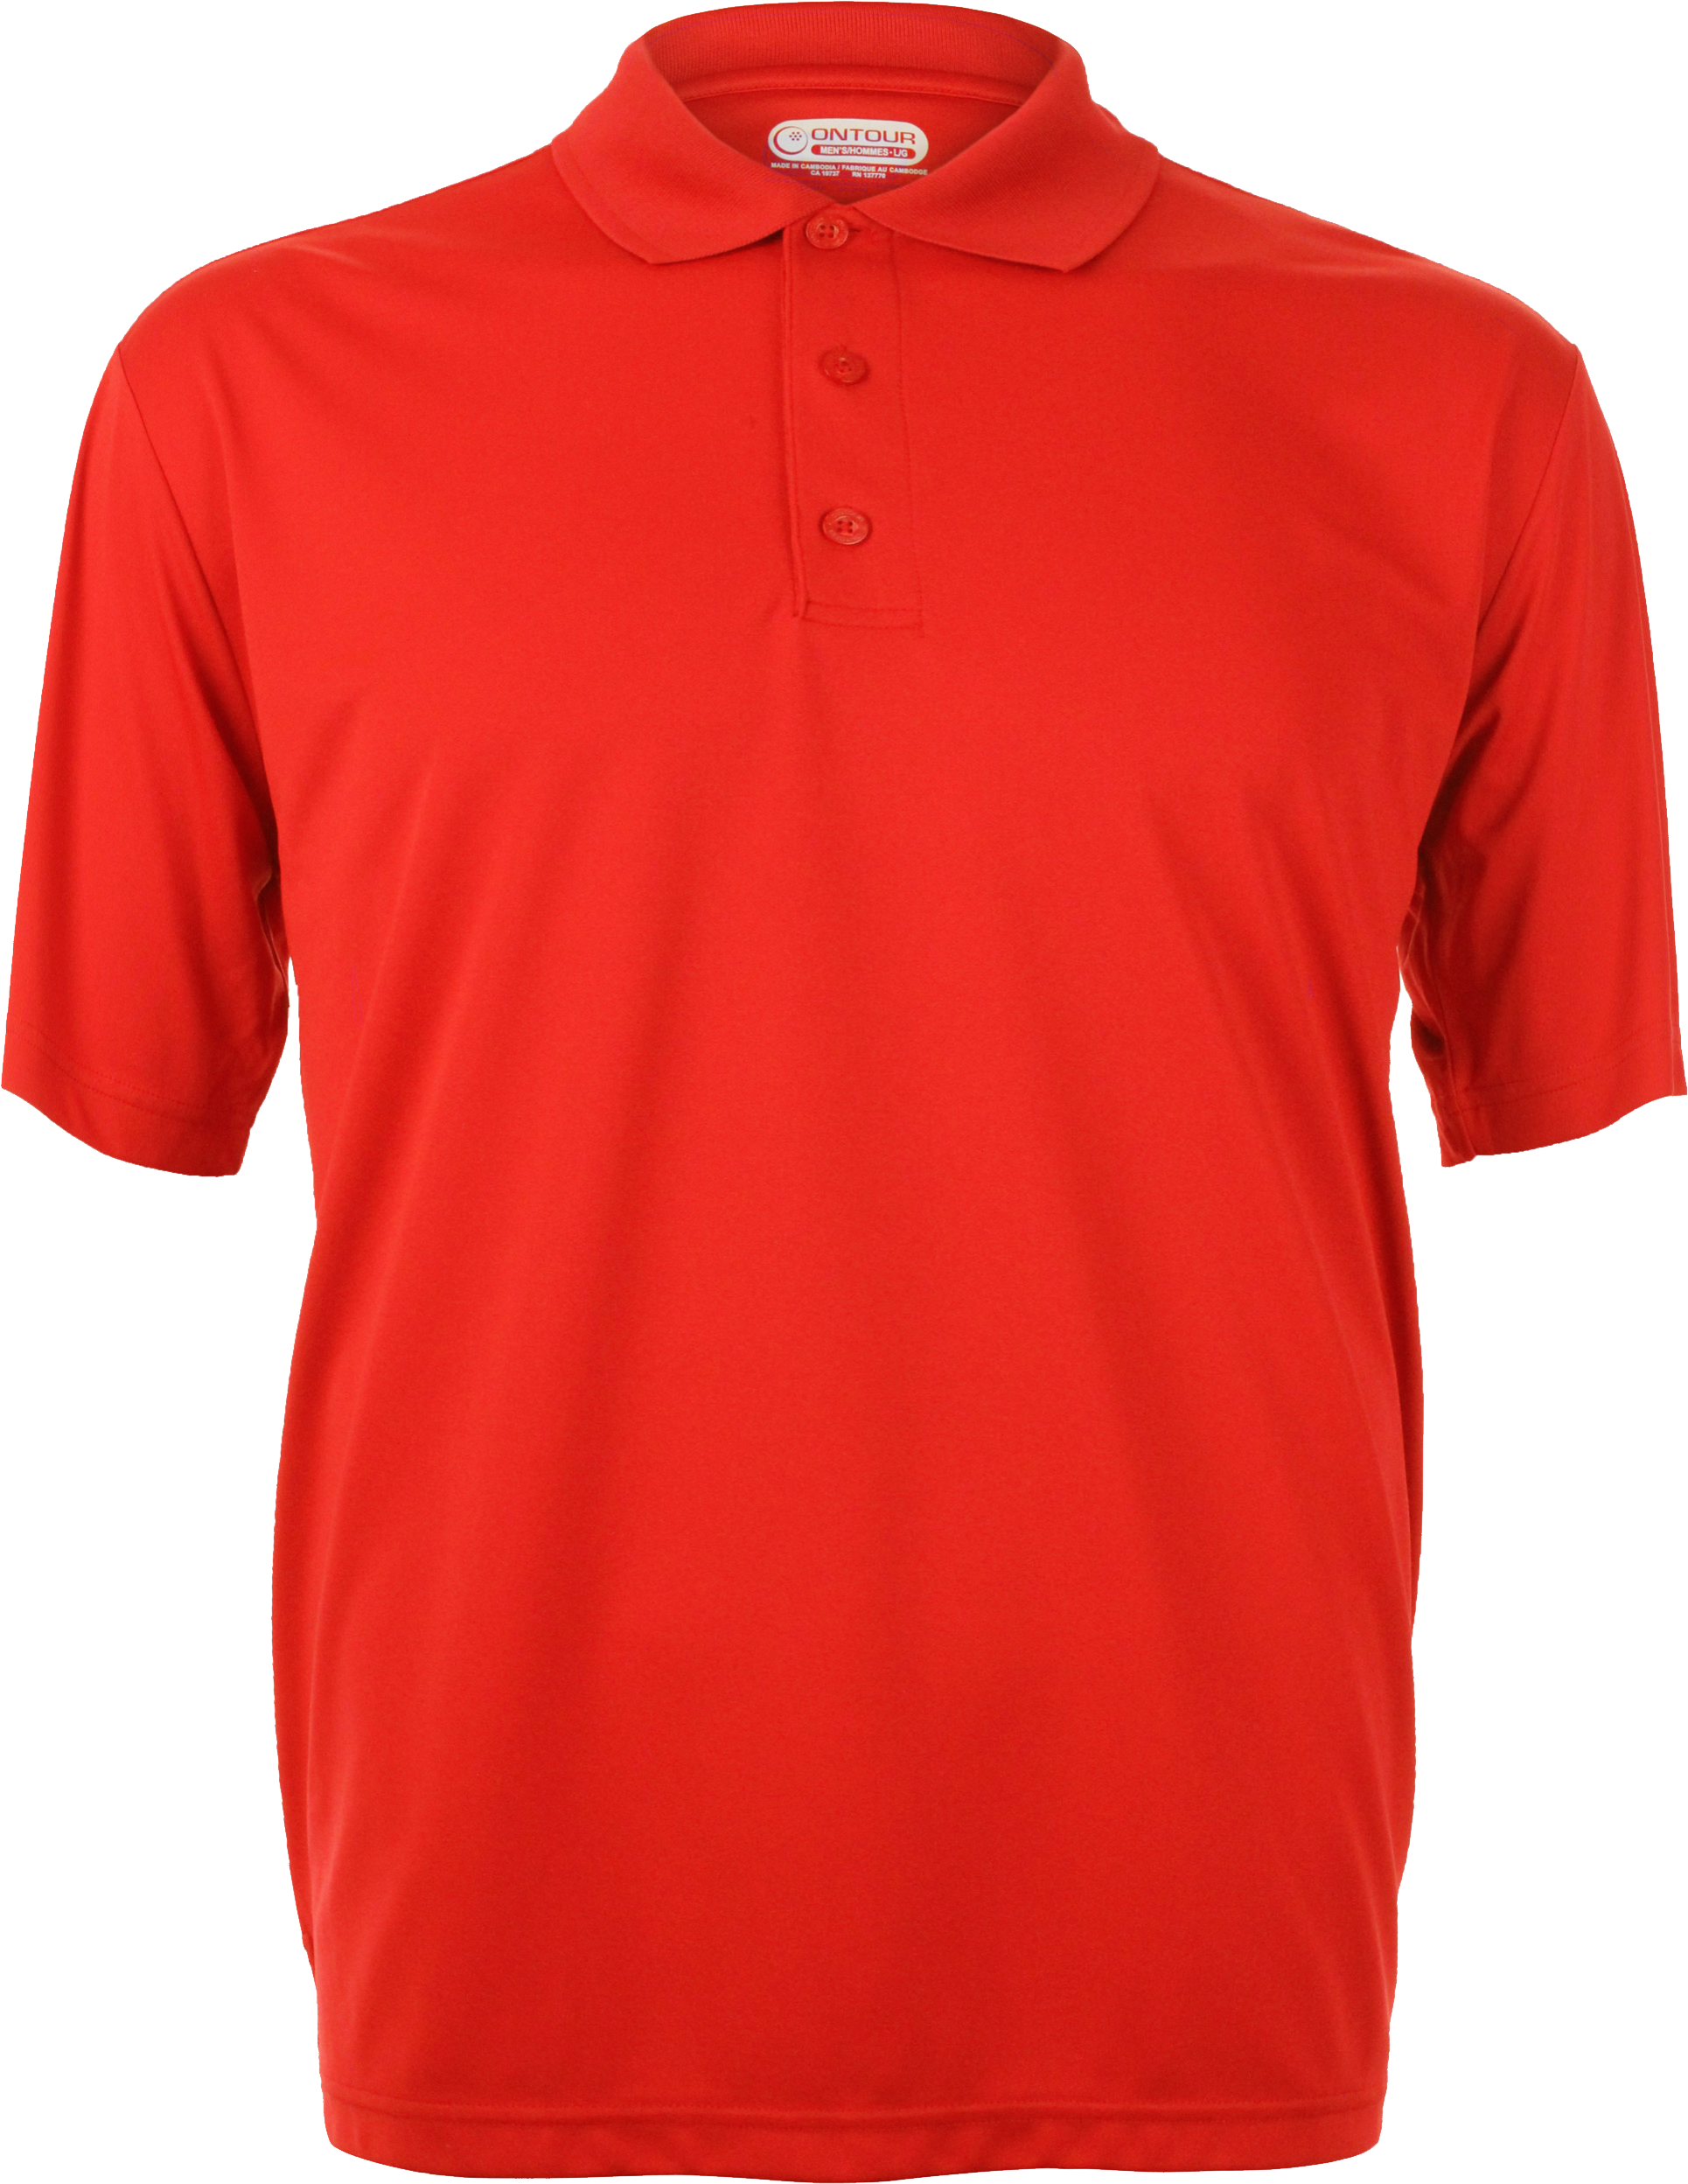 Red shirt png. Polo image purepng free